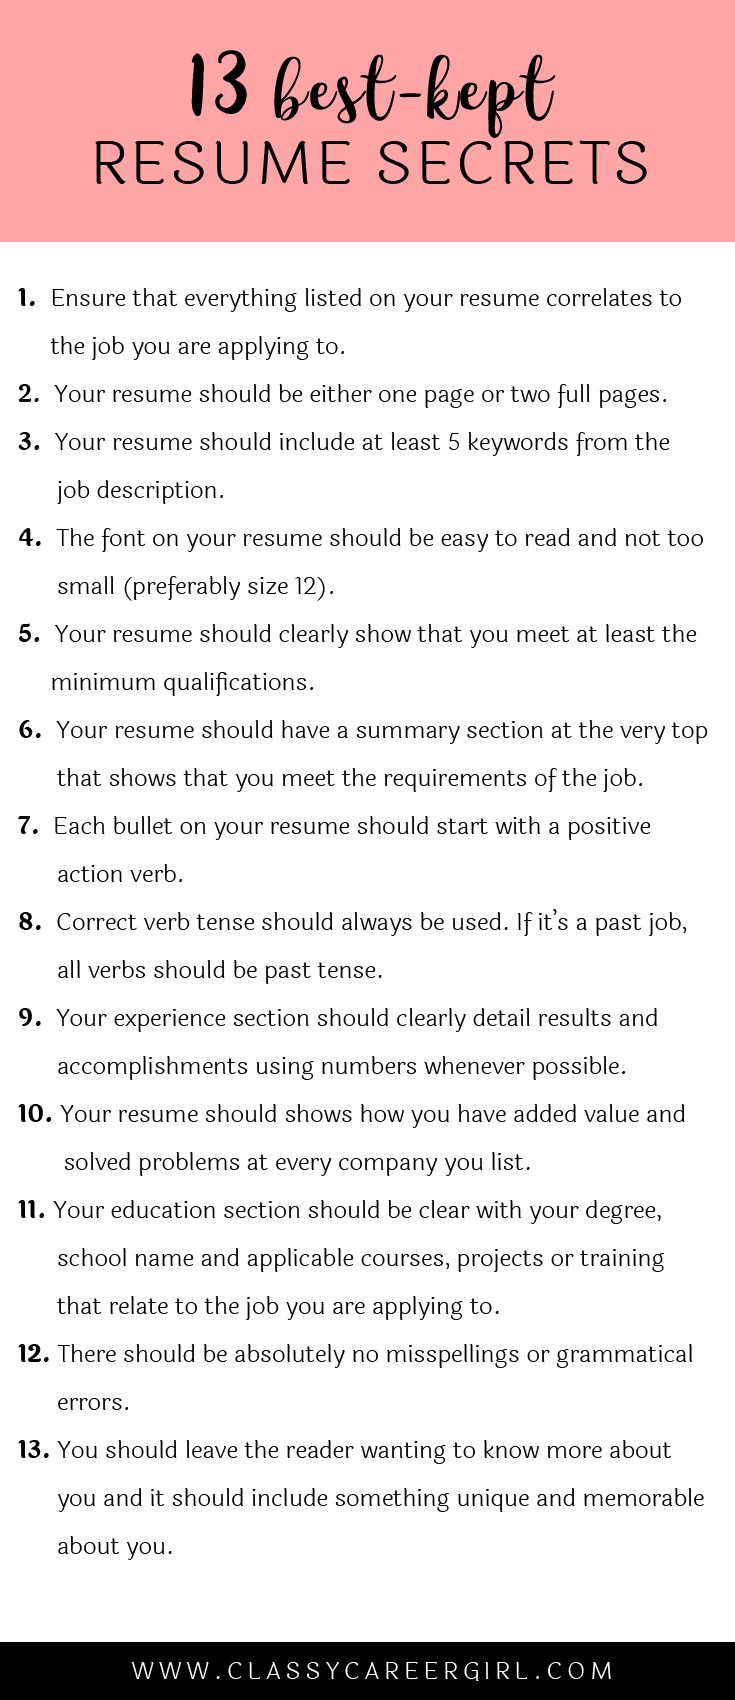 Opposenewapstandardsus  Seductive  Ideas About Resume On Pinterest  Cv Format Resume Cv And  With Outstanding Some Hiring Managers Will Toss Your Resume Out If You Dont Know These  With Amusing Insurance Resume Examples Also Paraeducator Resume In Addition Home Health Aide Resume Sample And Secretary Resumes As Well As Administrative Specialist Resume Additionally What Does A Job Resume Look Like From Pinterestcom With Opposenewapstandardsus  Outstanding  Ideas About Resume On Pinterest  Cv Format Resume Cv And  With Amusing Some Hiring Managers Will Toss Your Resume Out If You Dont Know These  And Seductive Insurance Resume Examples Also Paraeducator Resume In Addition Home Health Aide Resume Sample From Pinterestcom